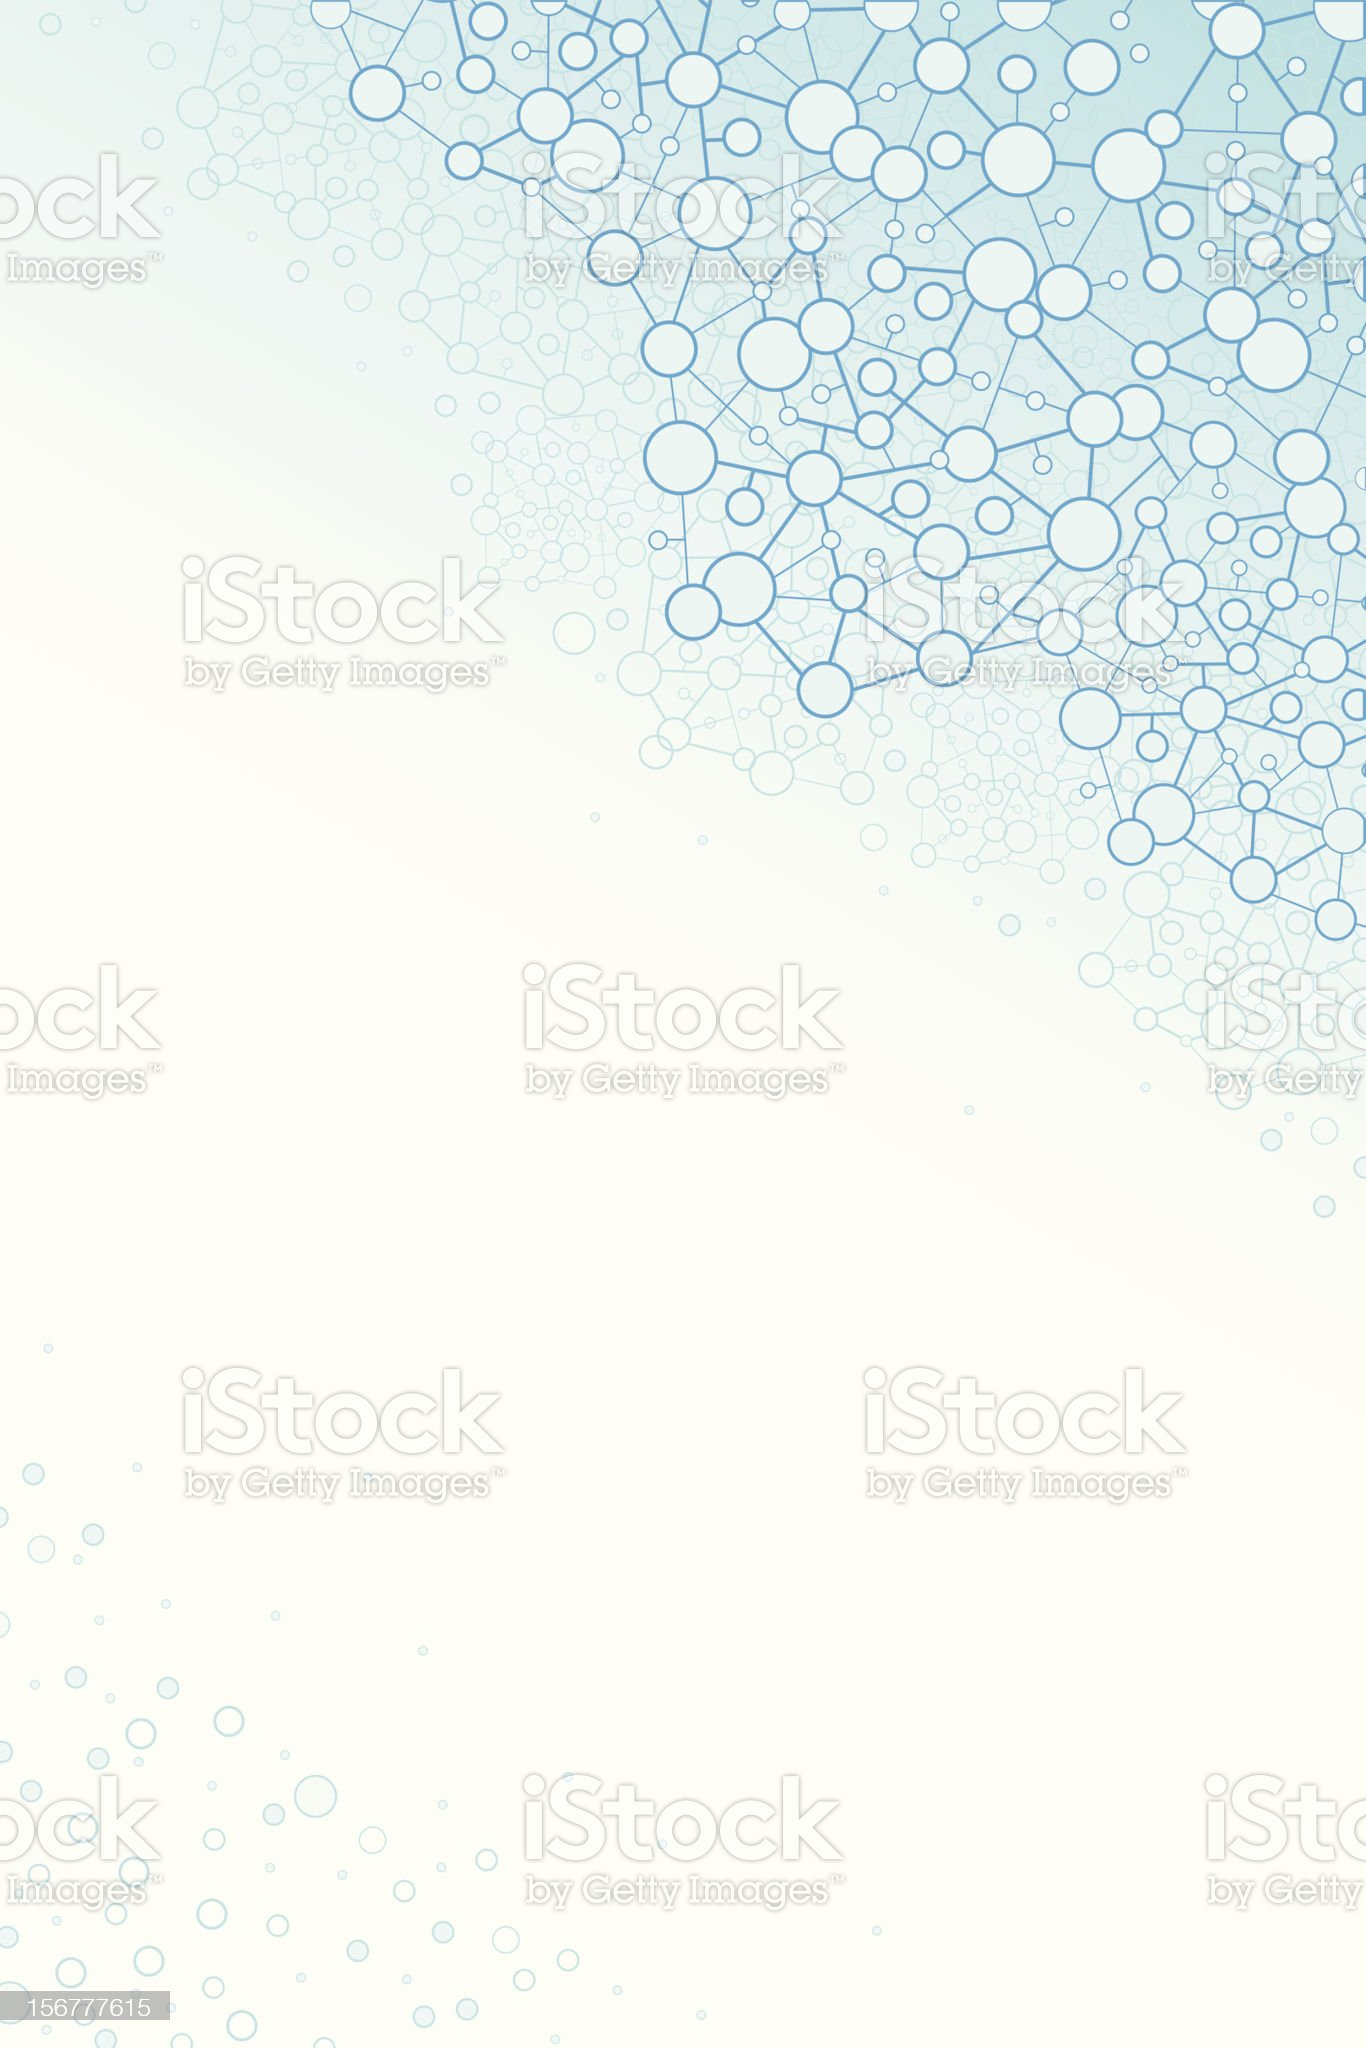 Abstract Molecules Background royalty-free stock vector art